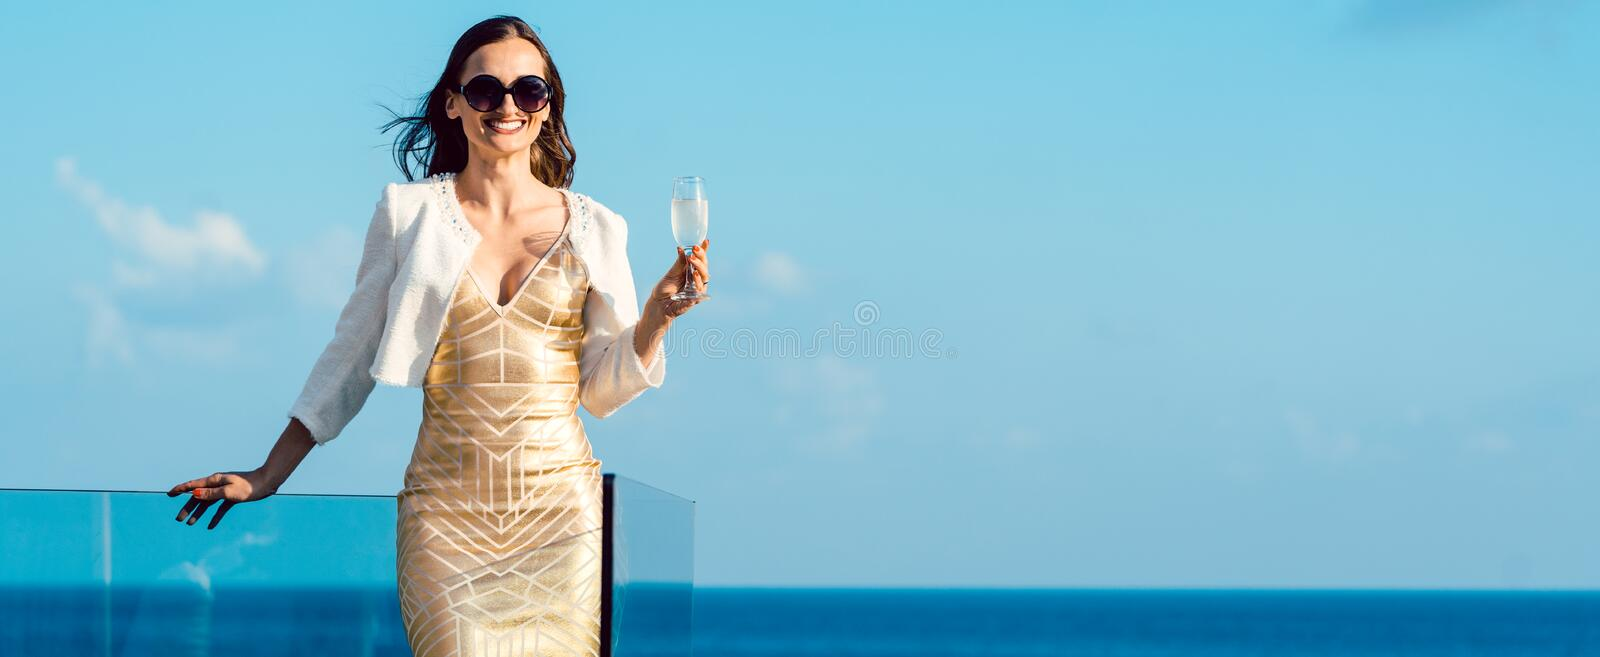 Woman drinking sparkling wine looking over ocean royalty free stock images